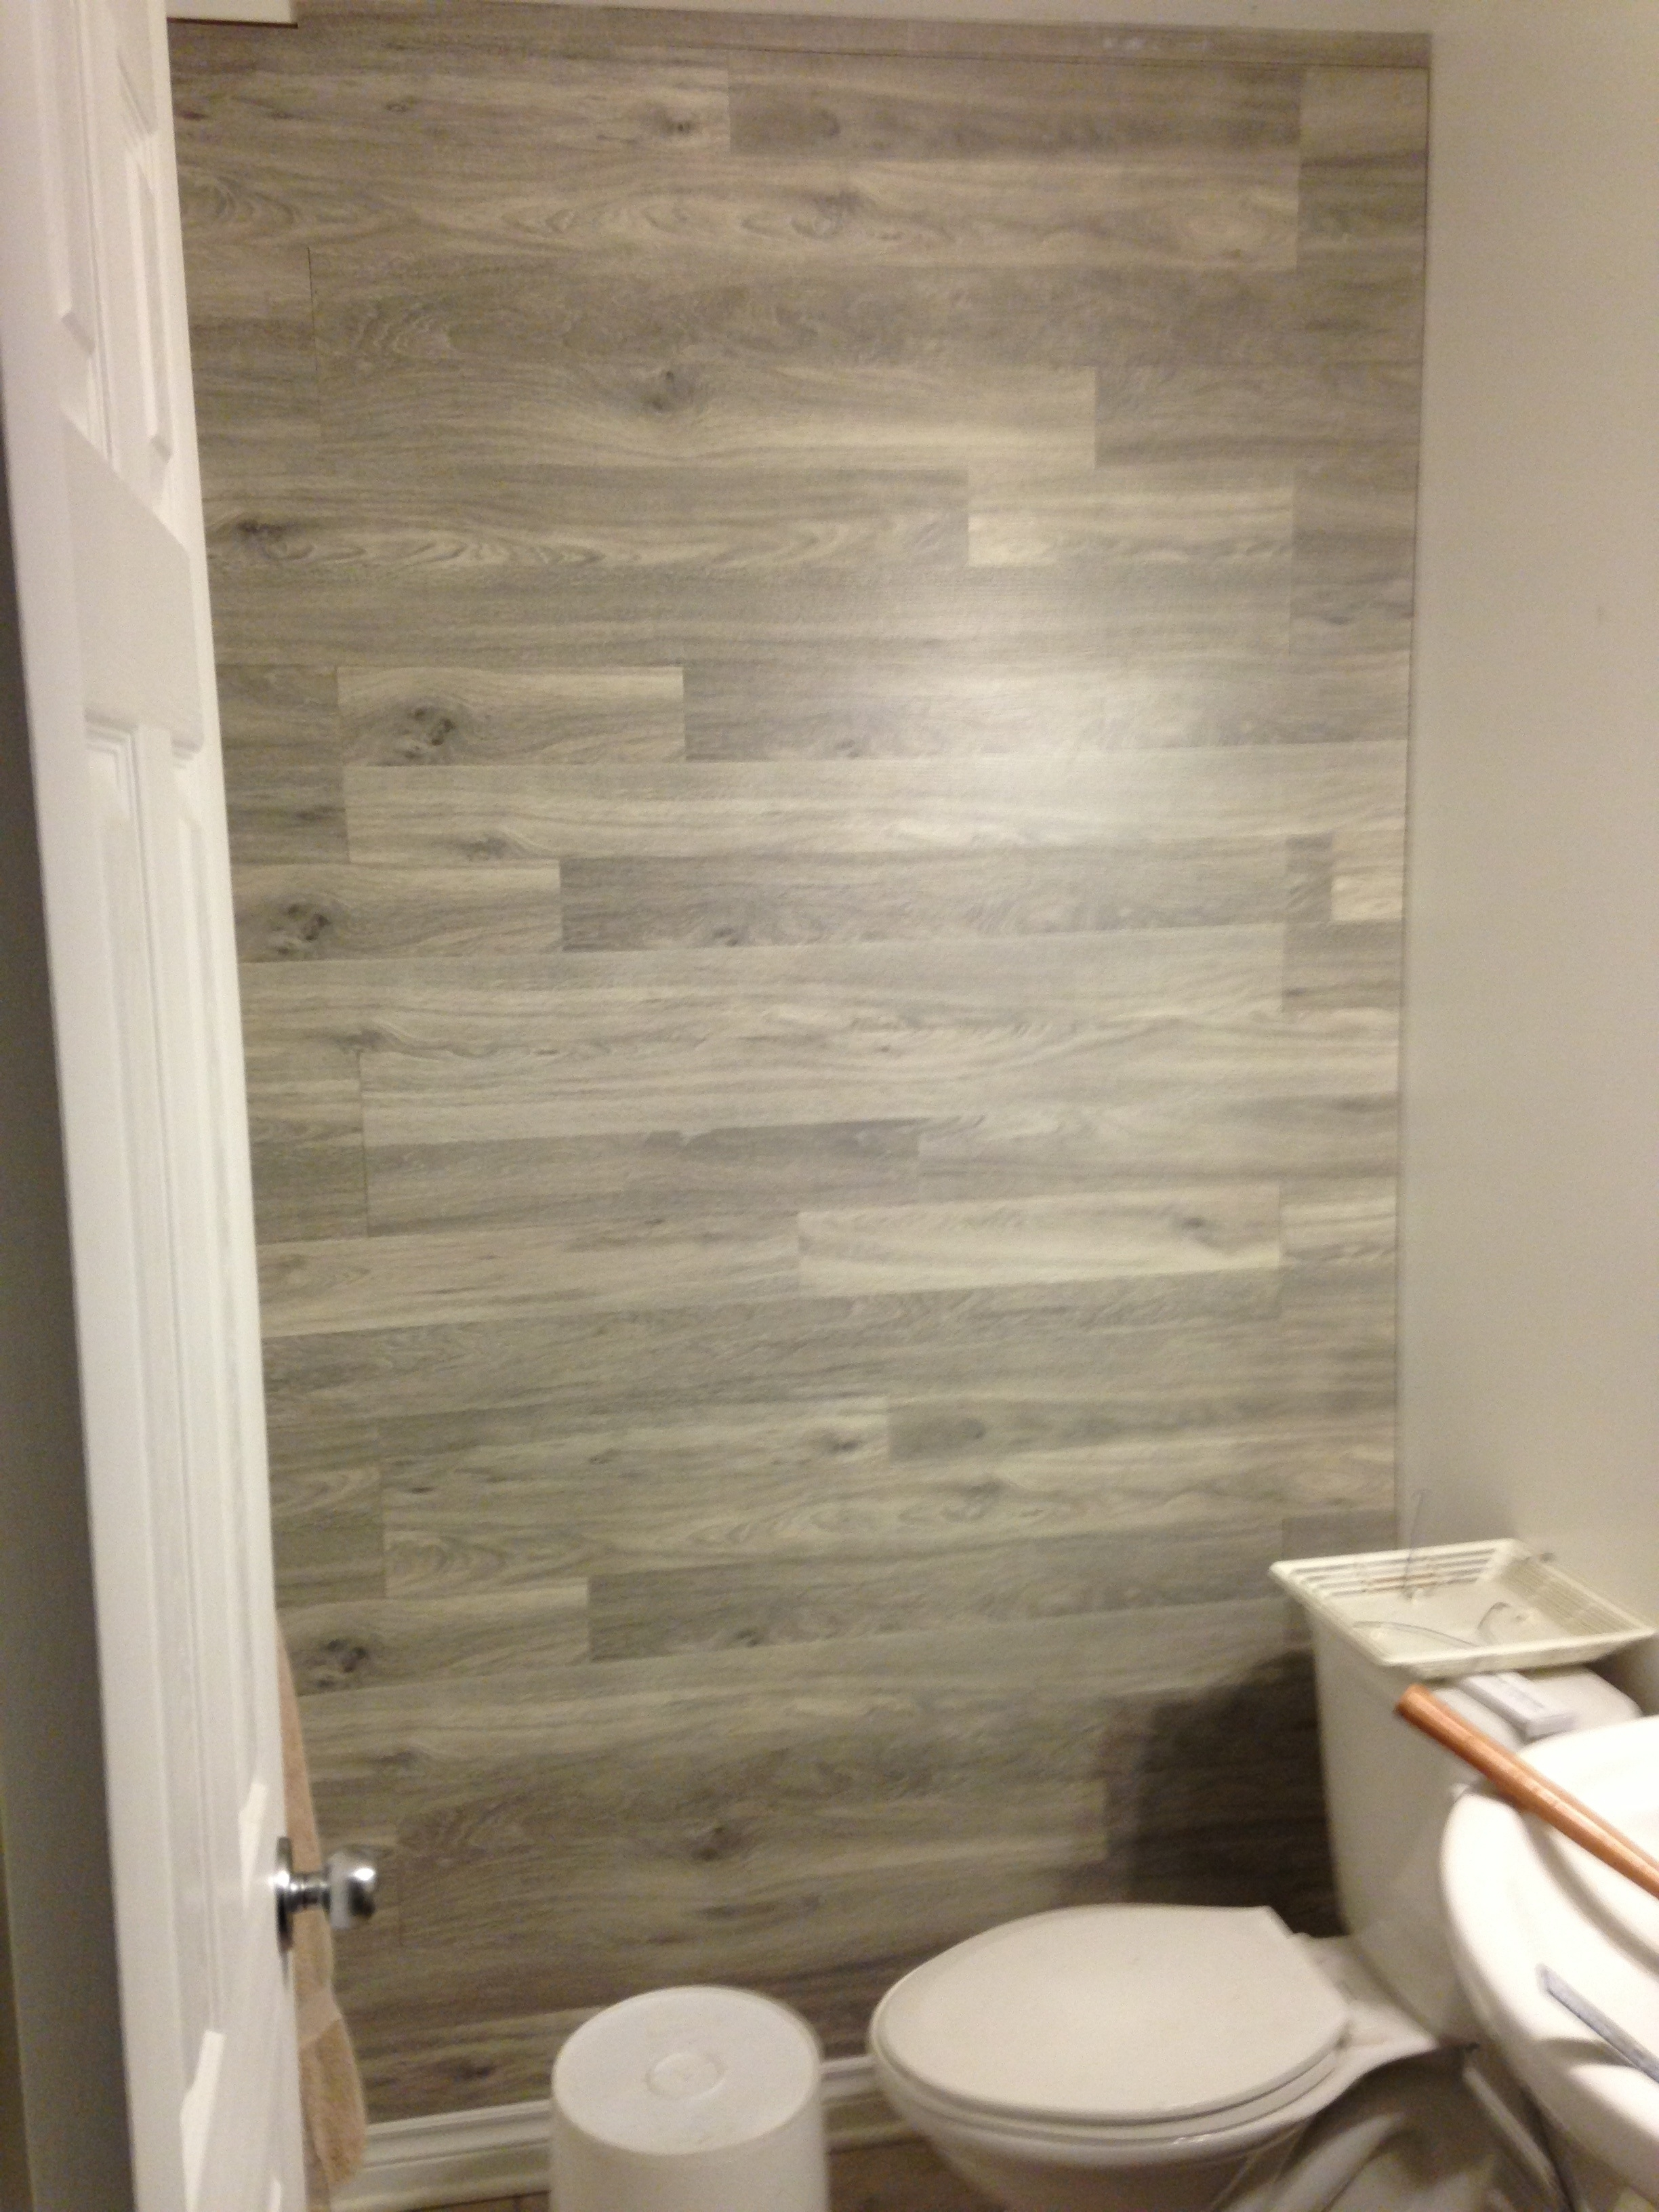 Laminate Flooring On Accent Wall Throughout Recent Wall Accents With Laminate Flooring (View 7 of 15)